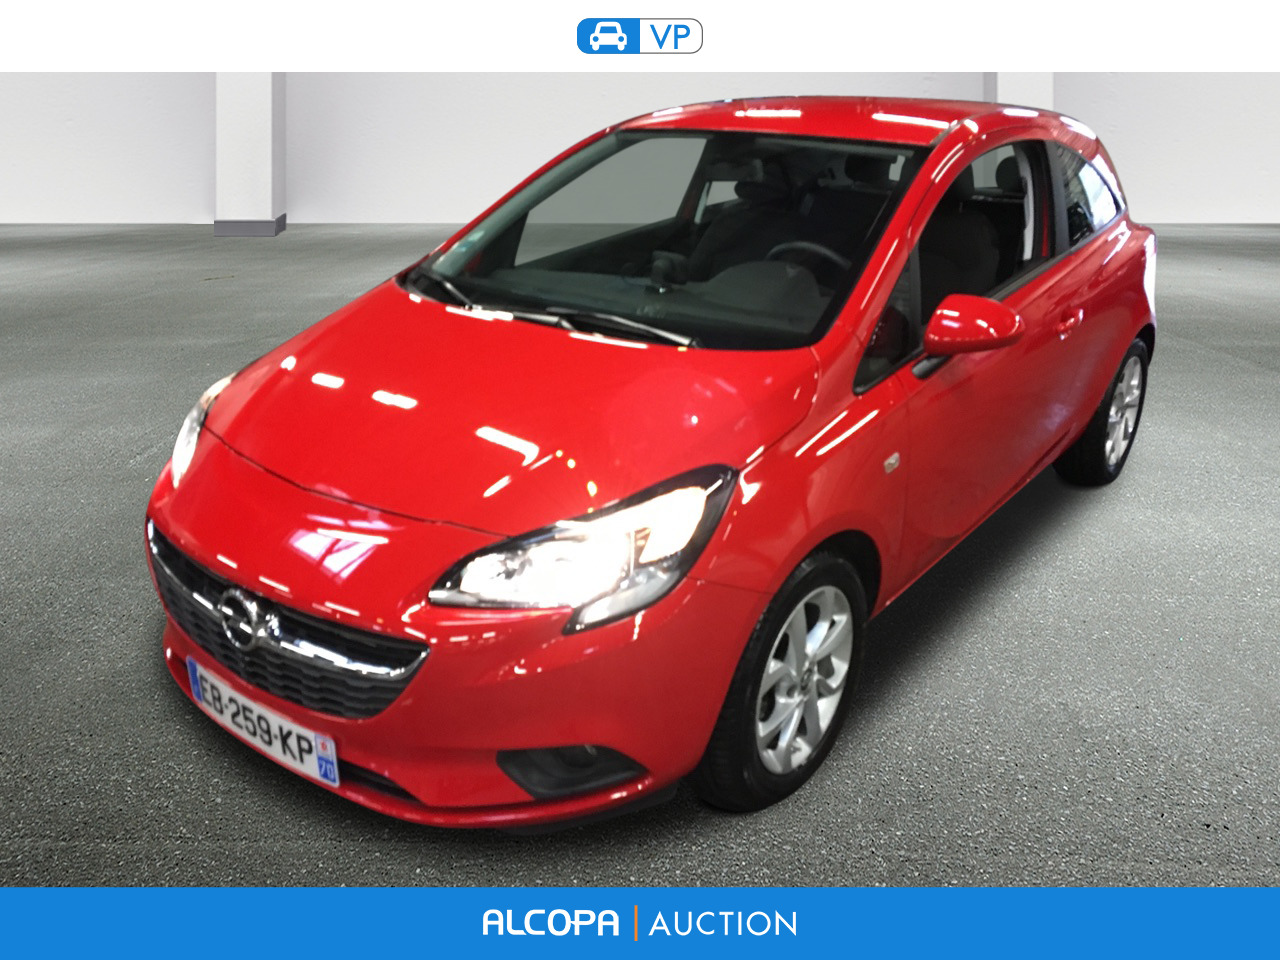 opel corsa corsa 1 4 turbo 100ch sport start stop alcopa auction. Black Bedroom Furniture Sets. Home Design Ideas